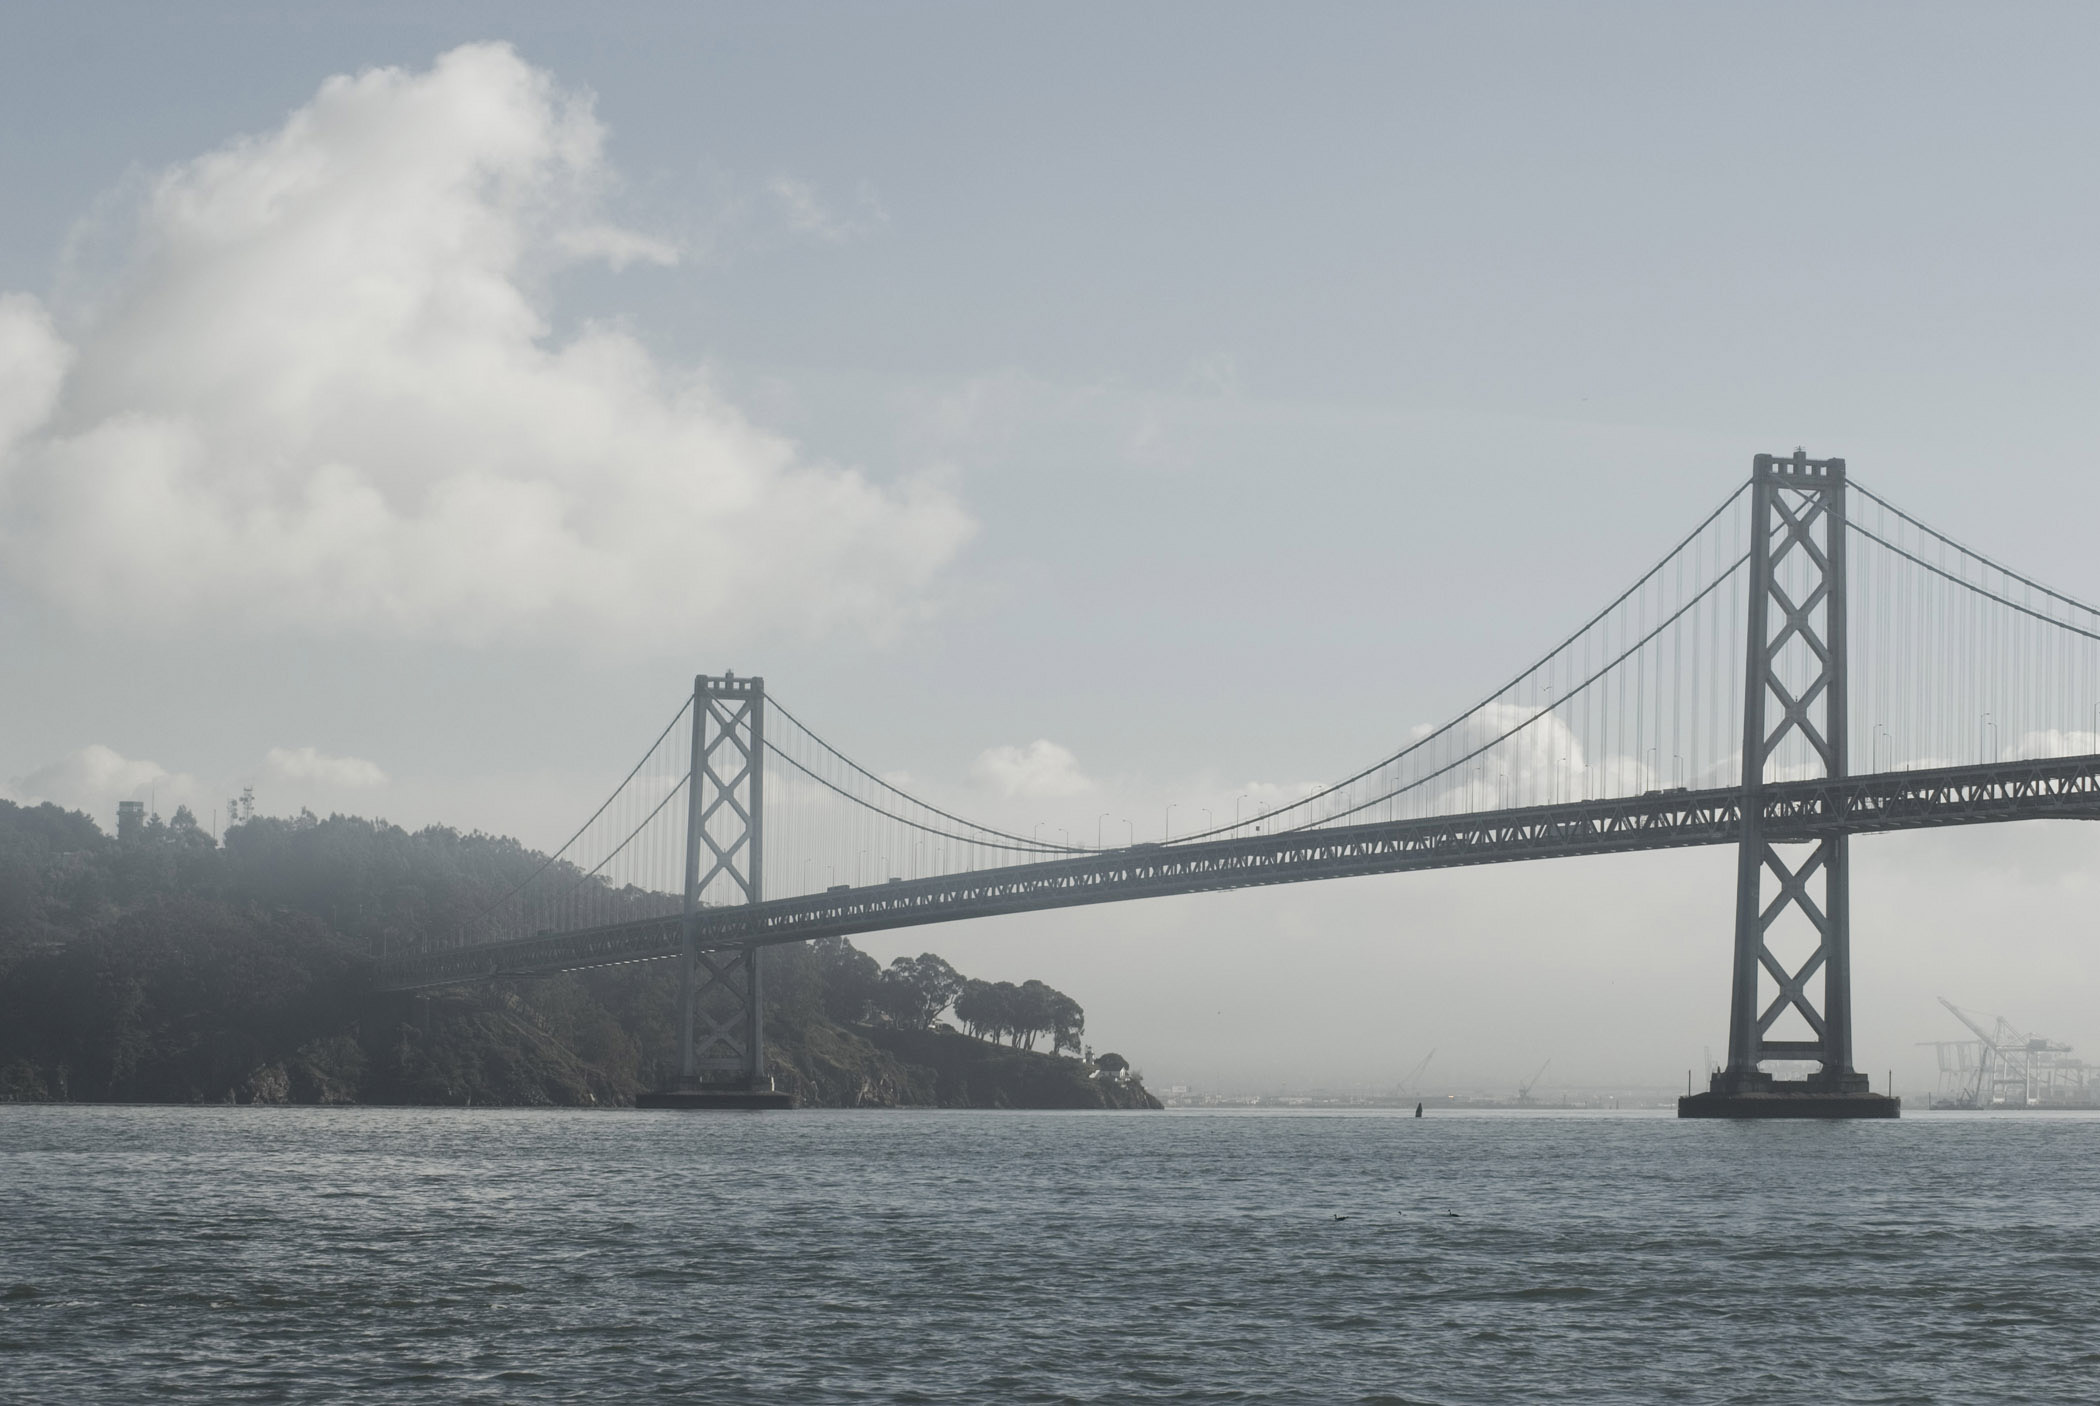 Famous Landmark Bay Bridge in San Francisco with cloudy sky